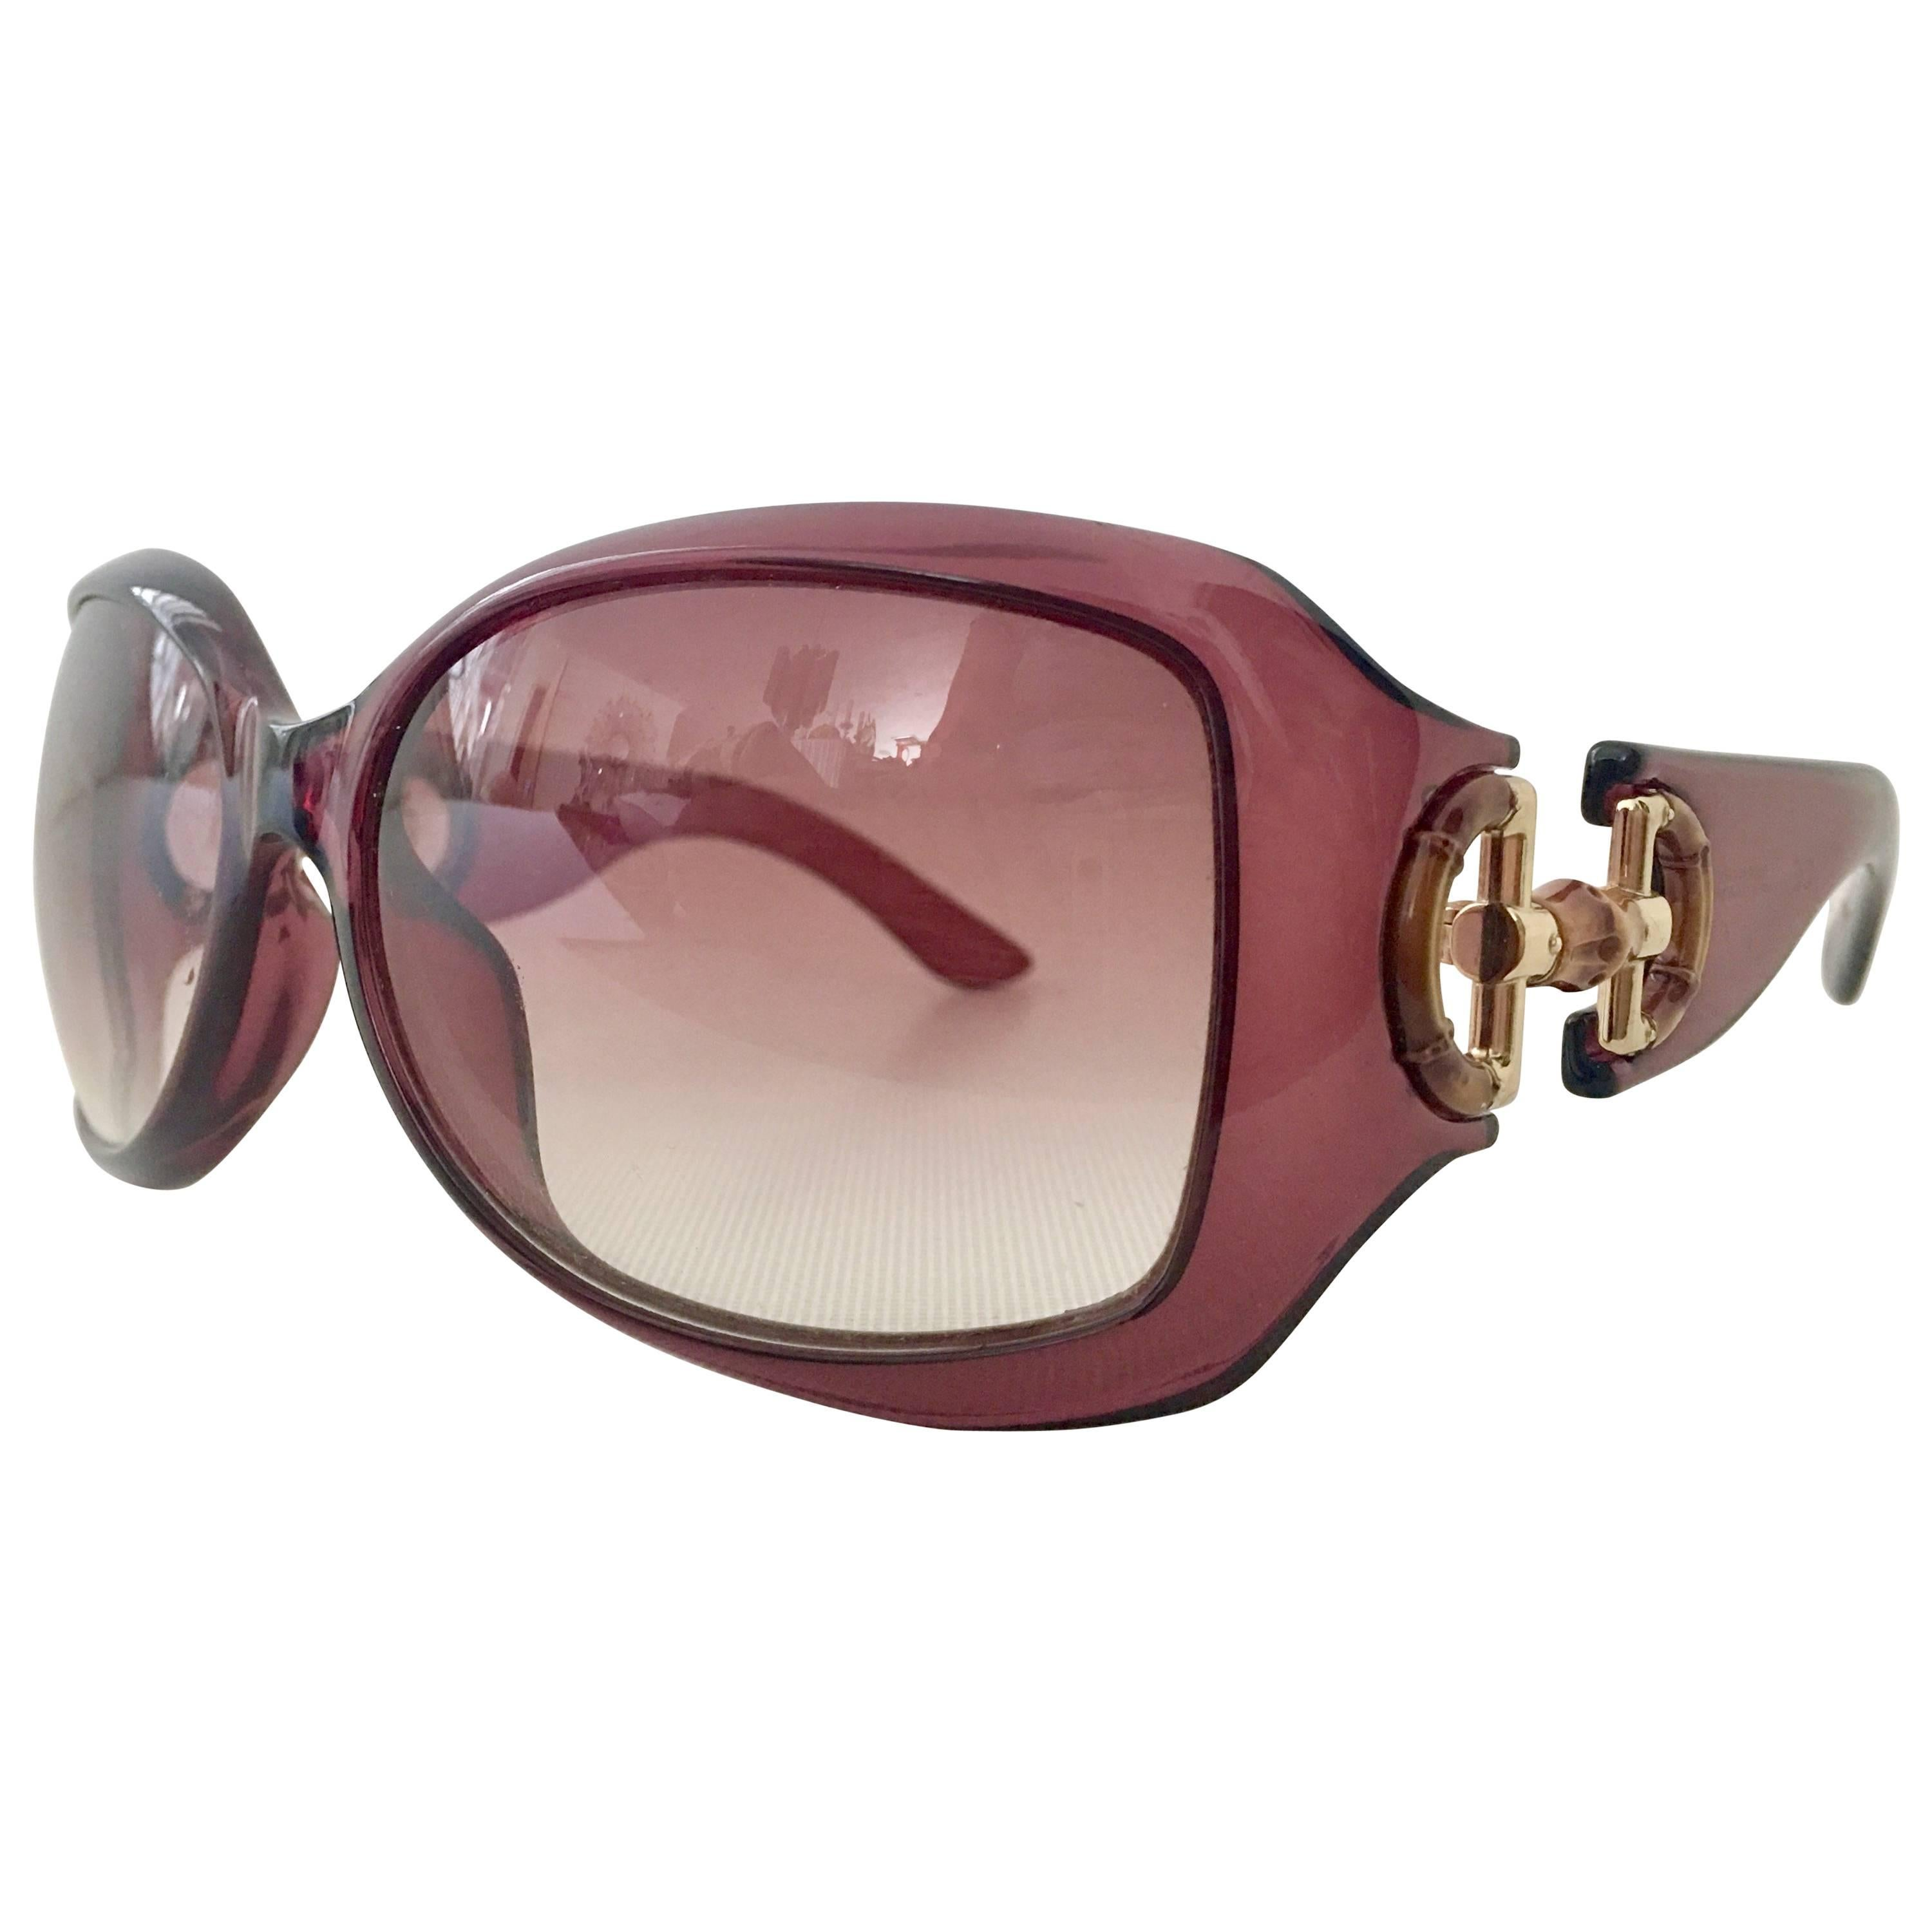 3044d0dd26 Gucci Amethyst Bamboo Horse Bit Oversized Sunglasses at 1stdibs